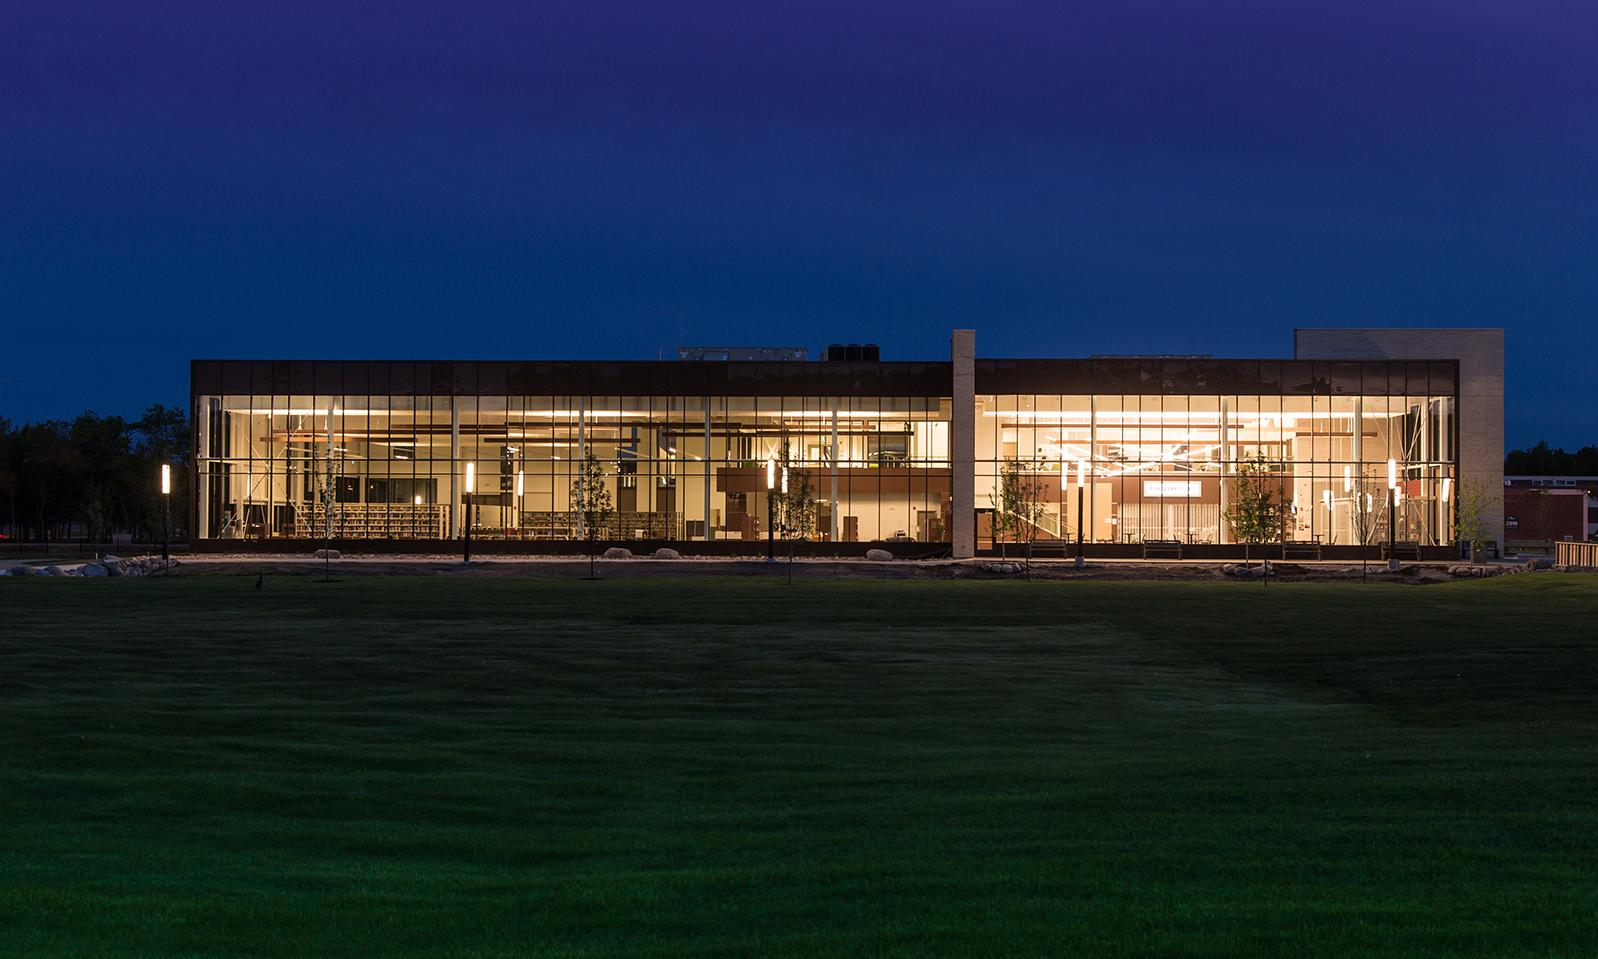 Canadian Mennonite University, Marpeck Commons. North side of the library at night.